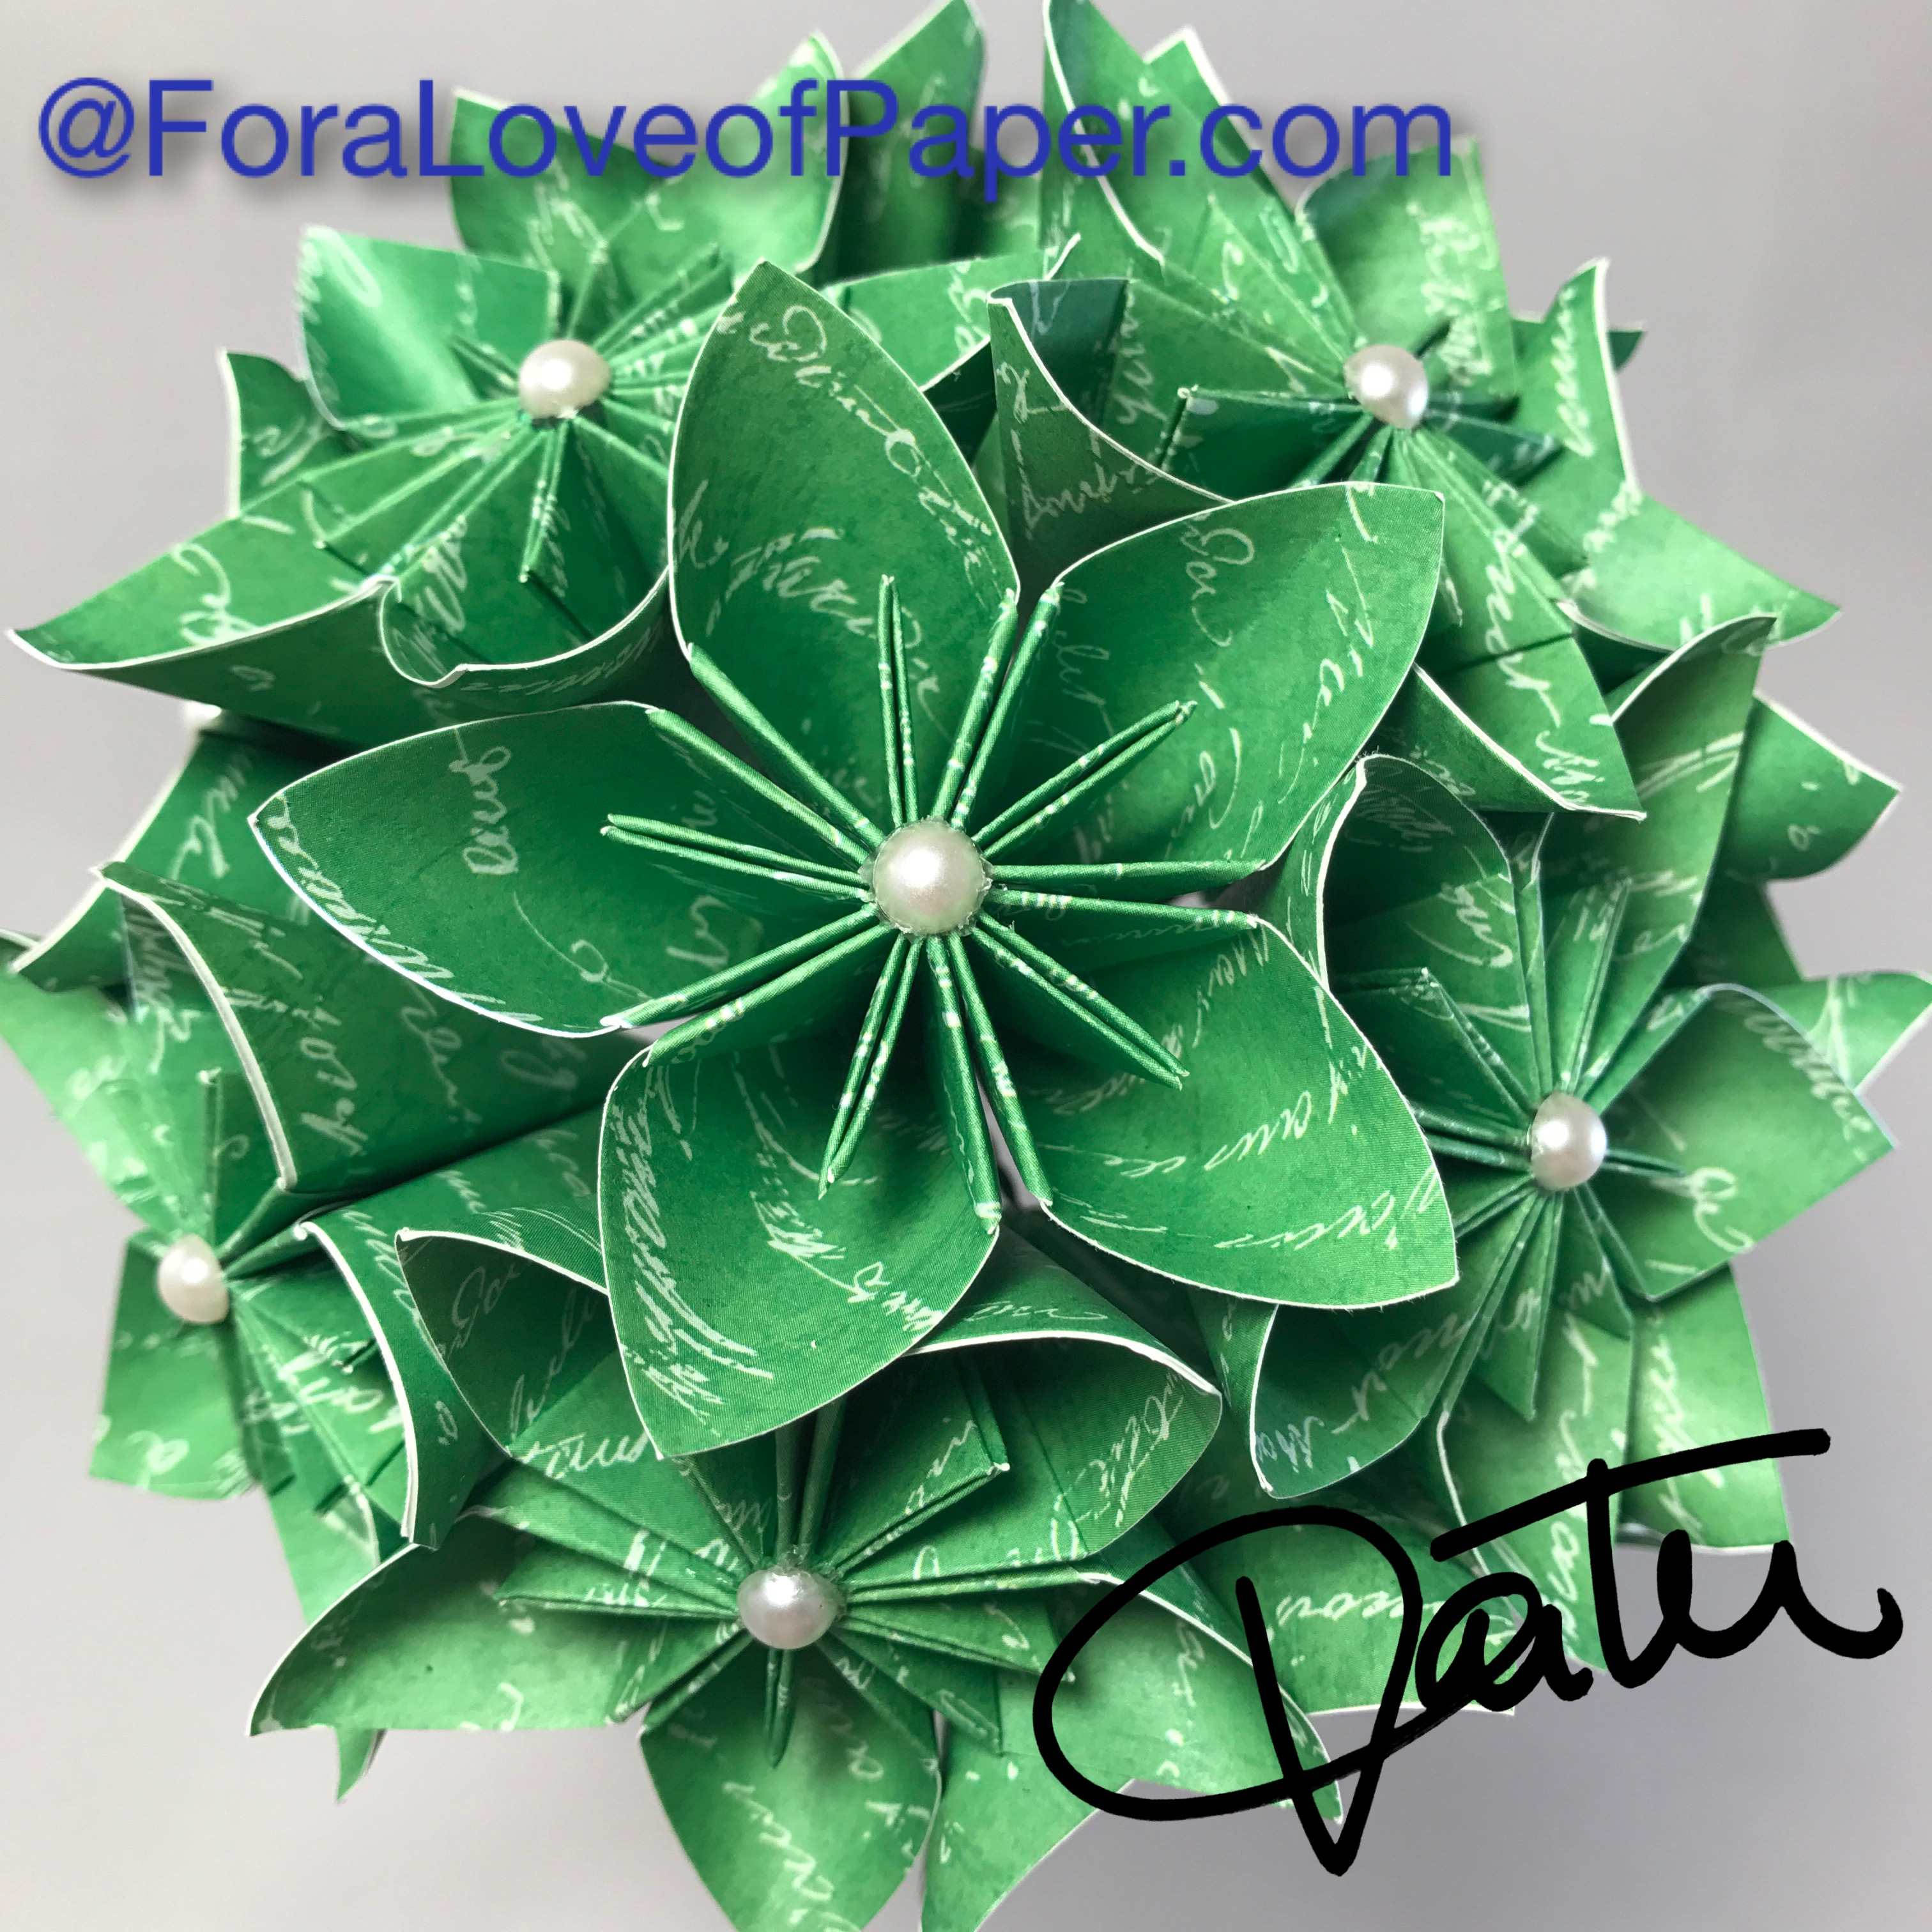 Paper flowers made from green paper with white script